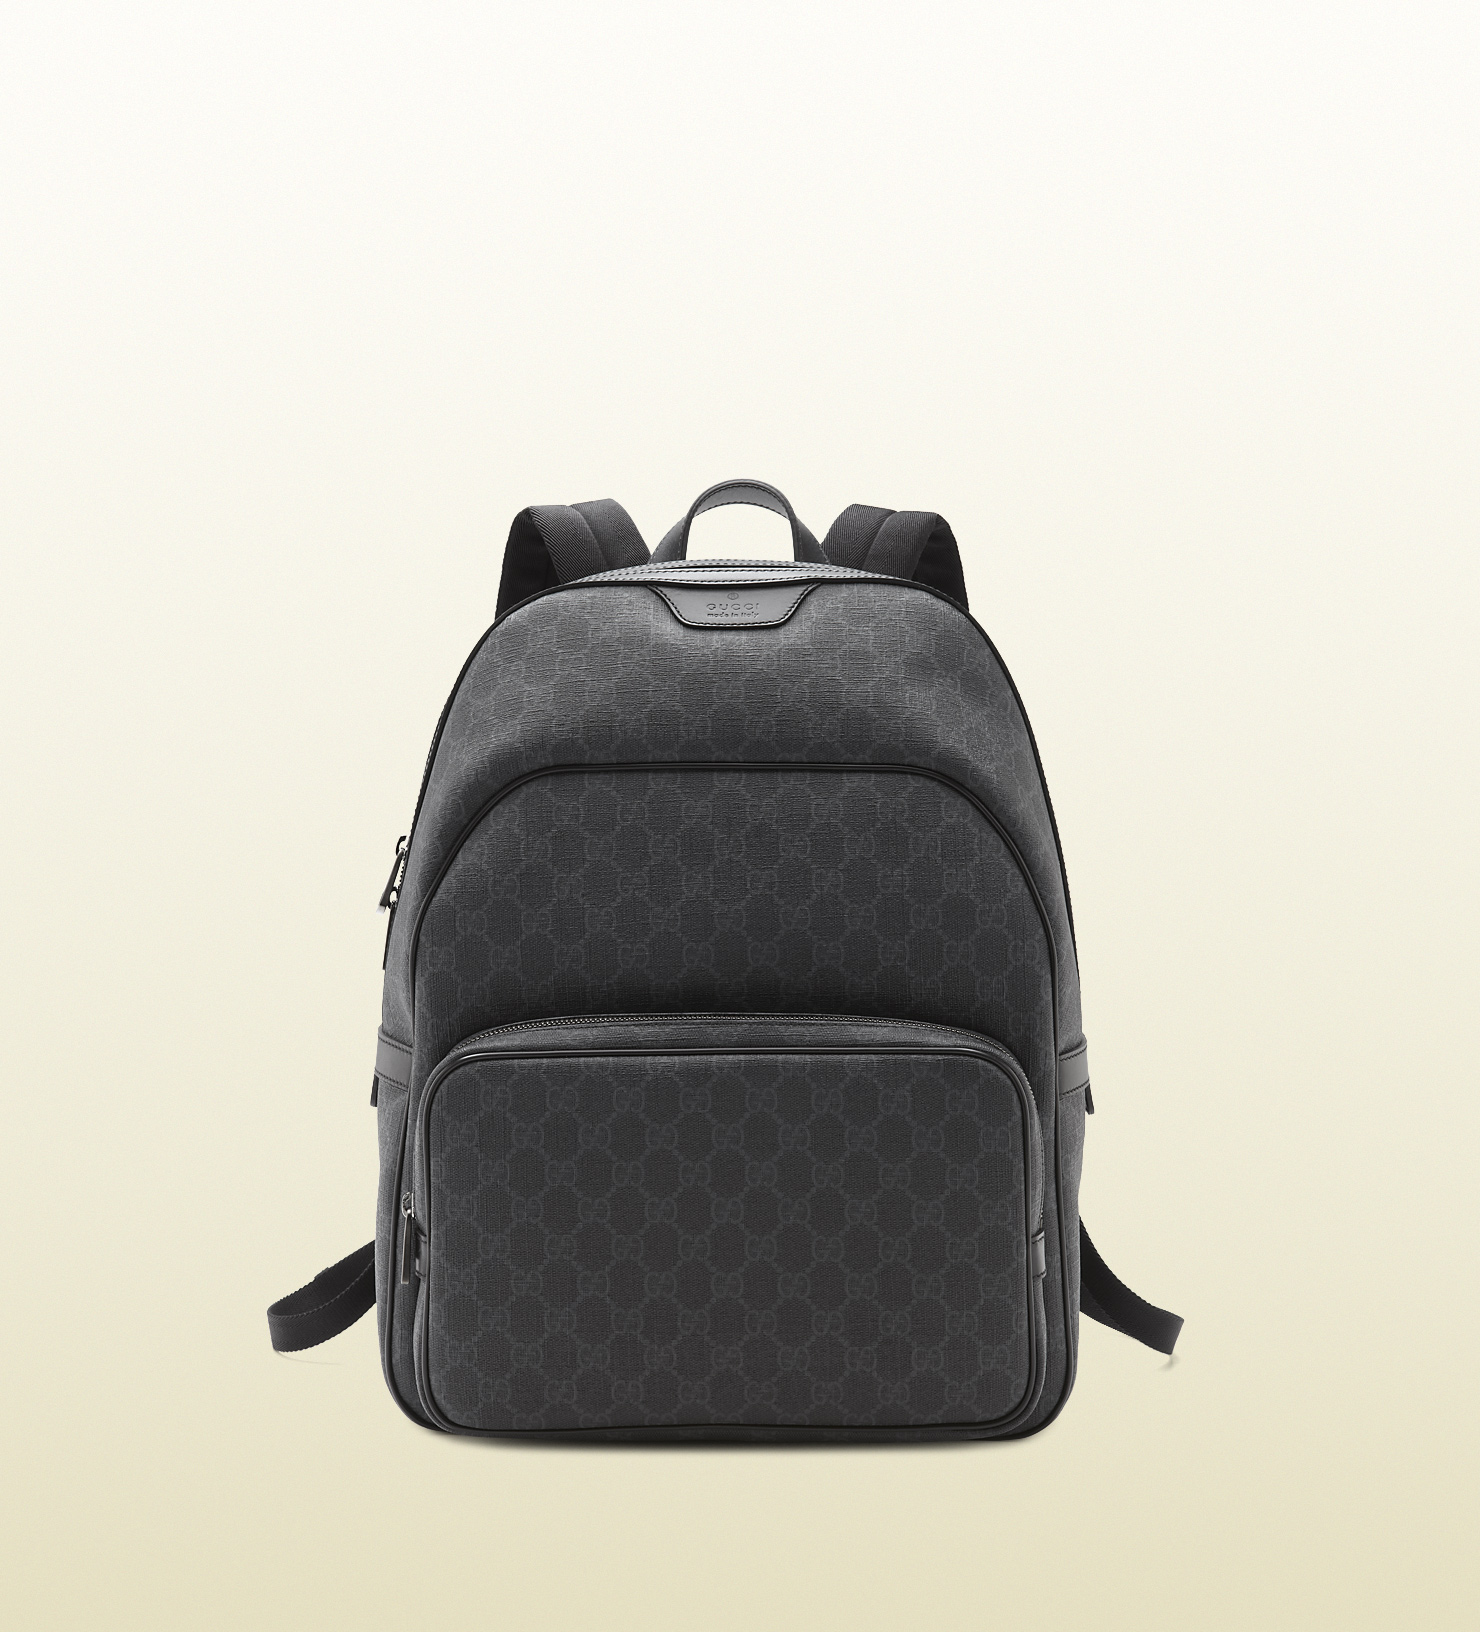 215fe02f670314 Gucci Gg Supreme Canvas Backpack in Gray for Men - Lyst